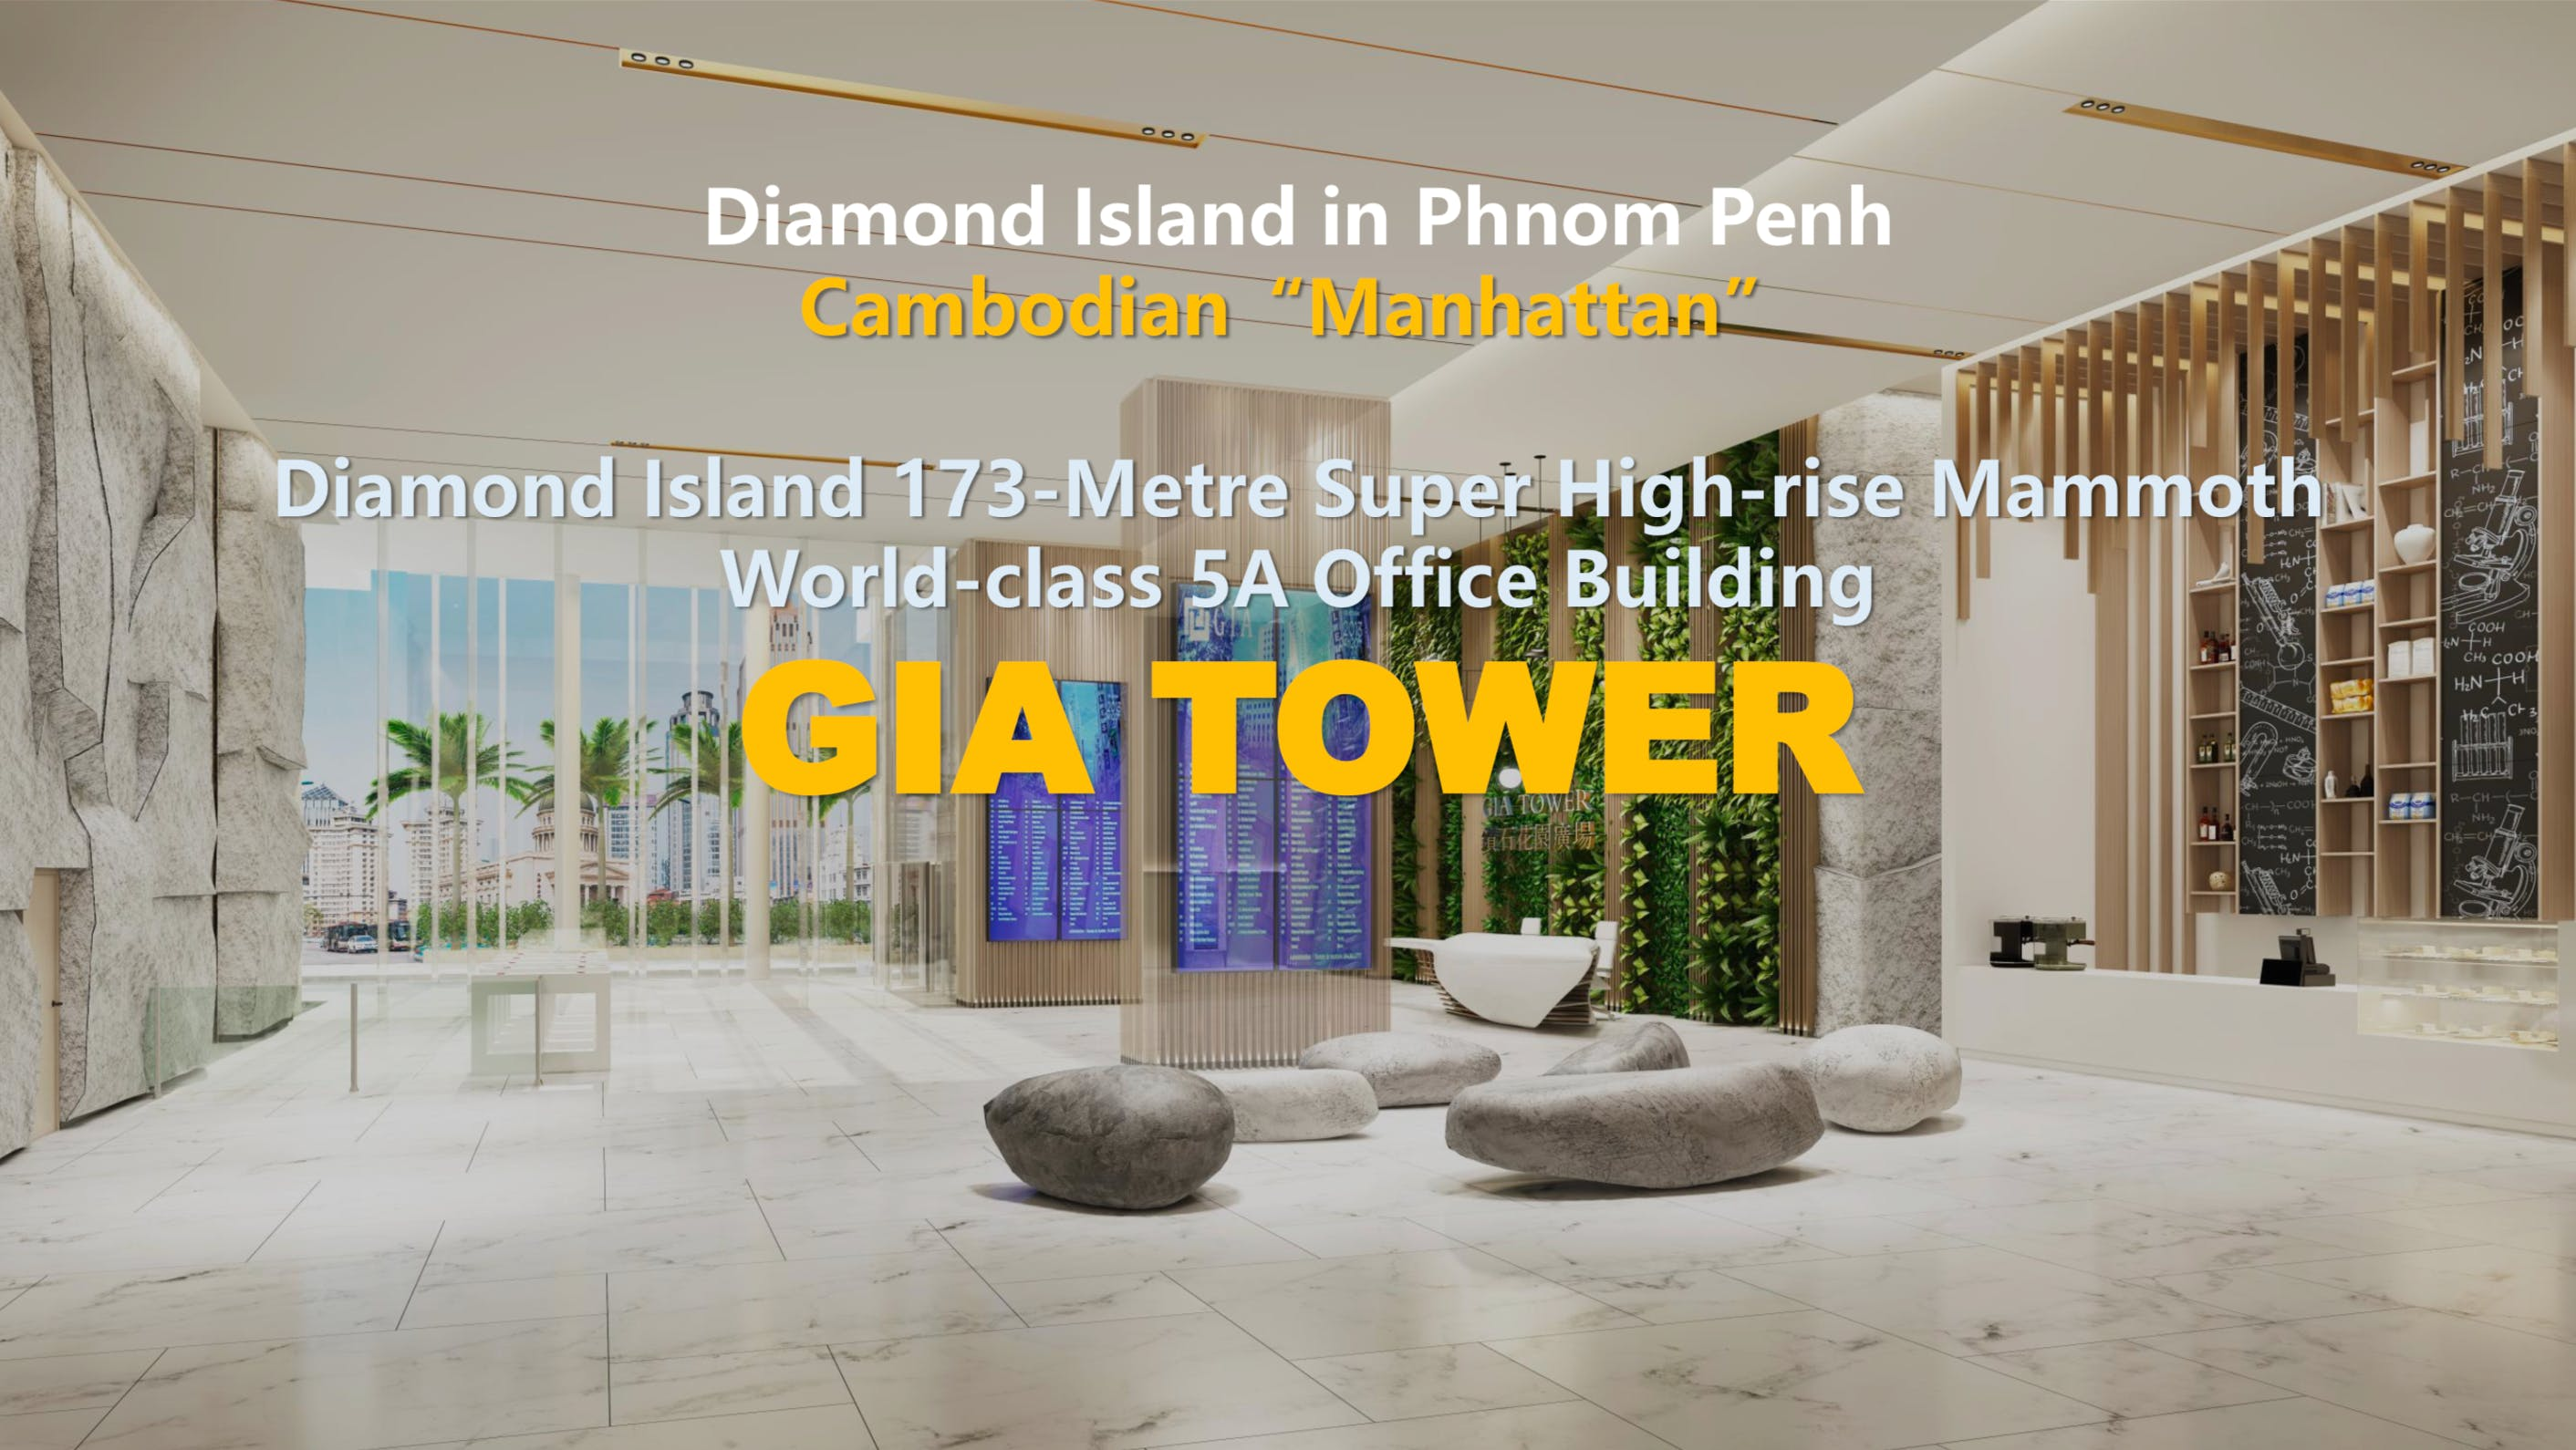 GIA Tower Phnom Penh Launch in Singapore